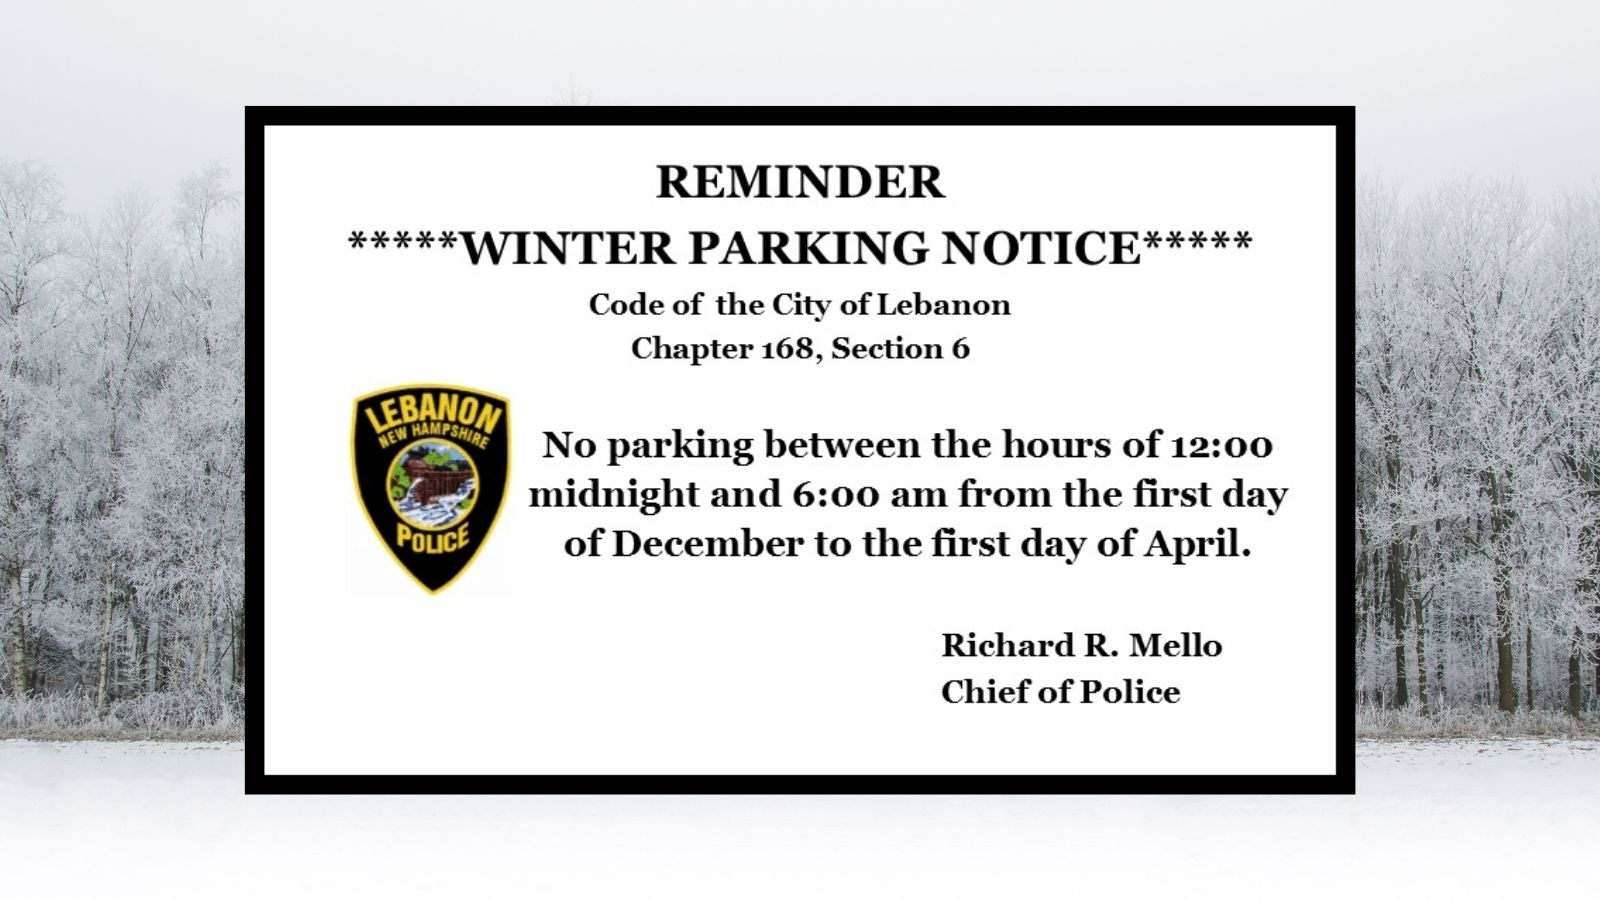 LPD Winter Parking Ban reminder windshield notice